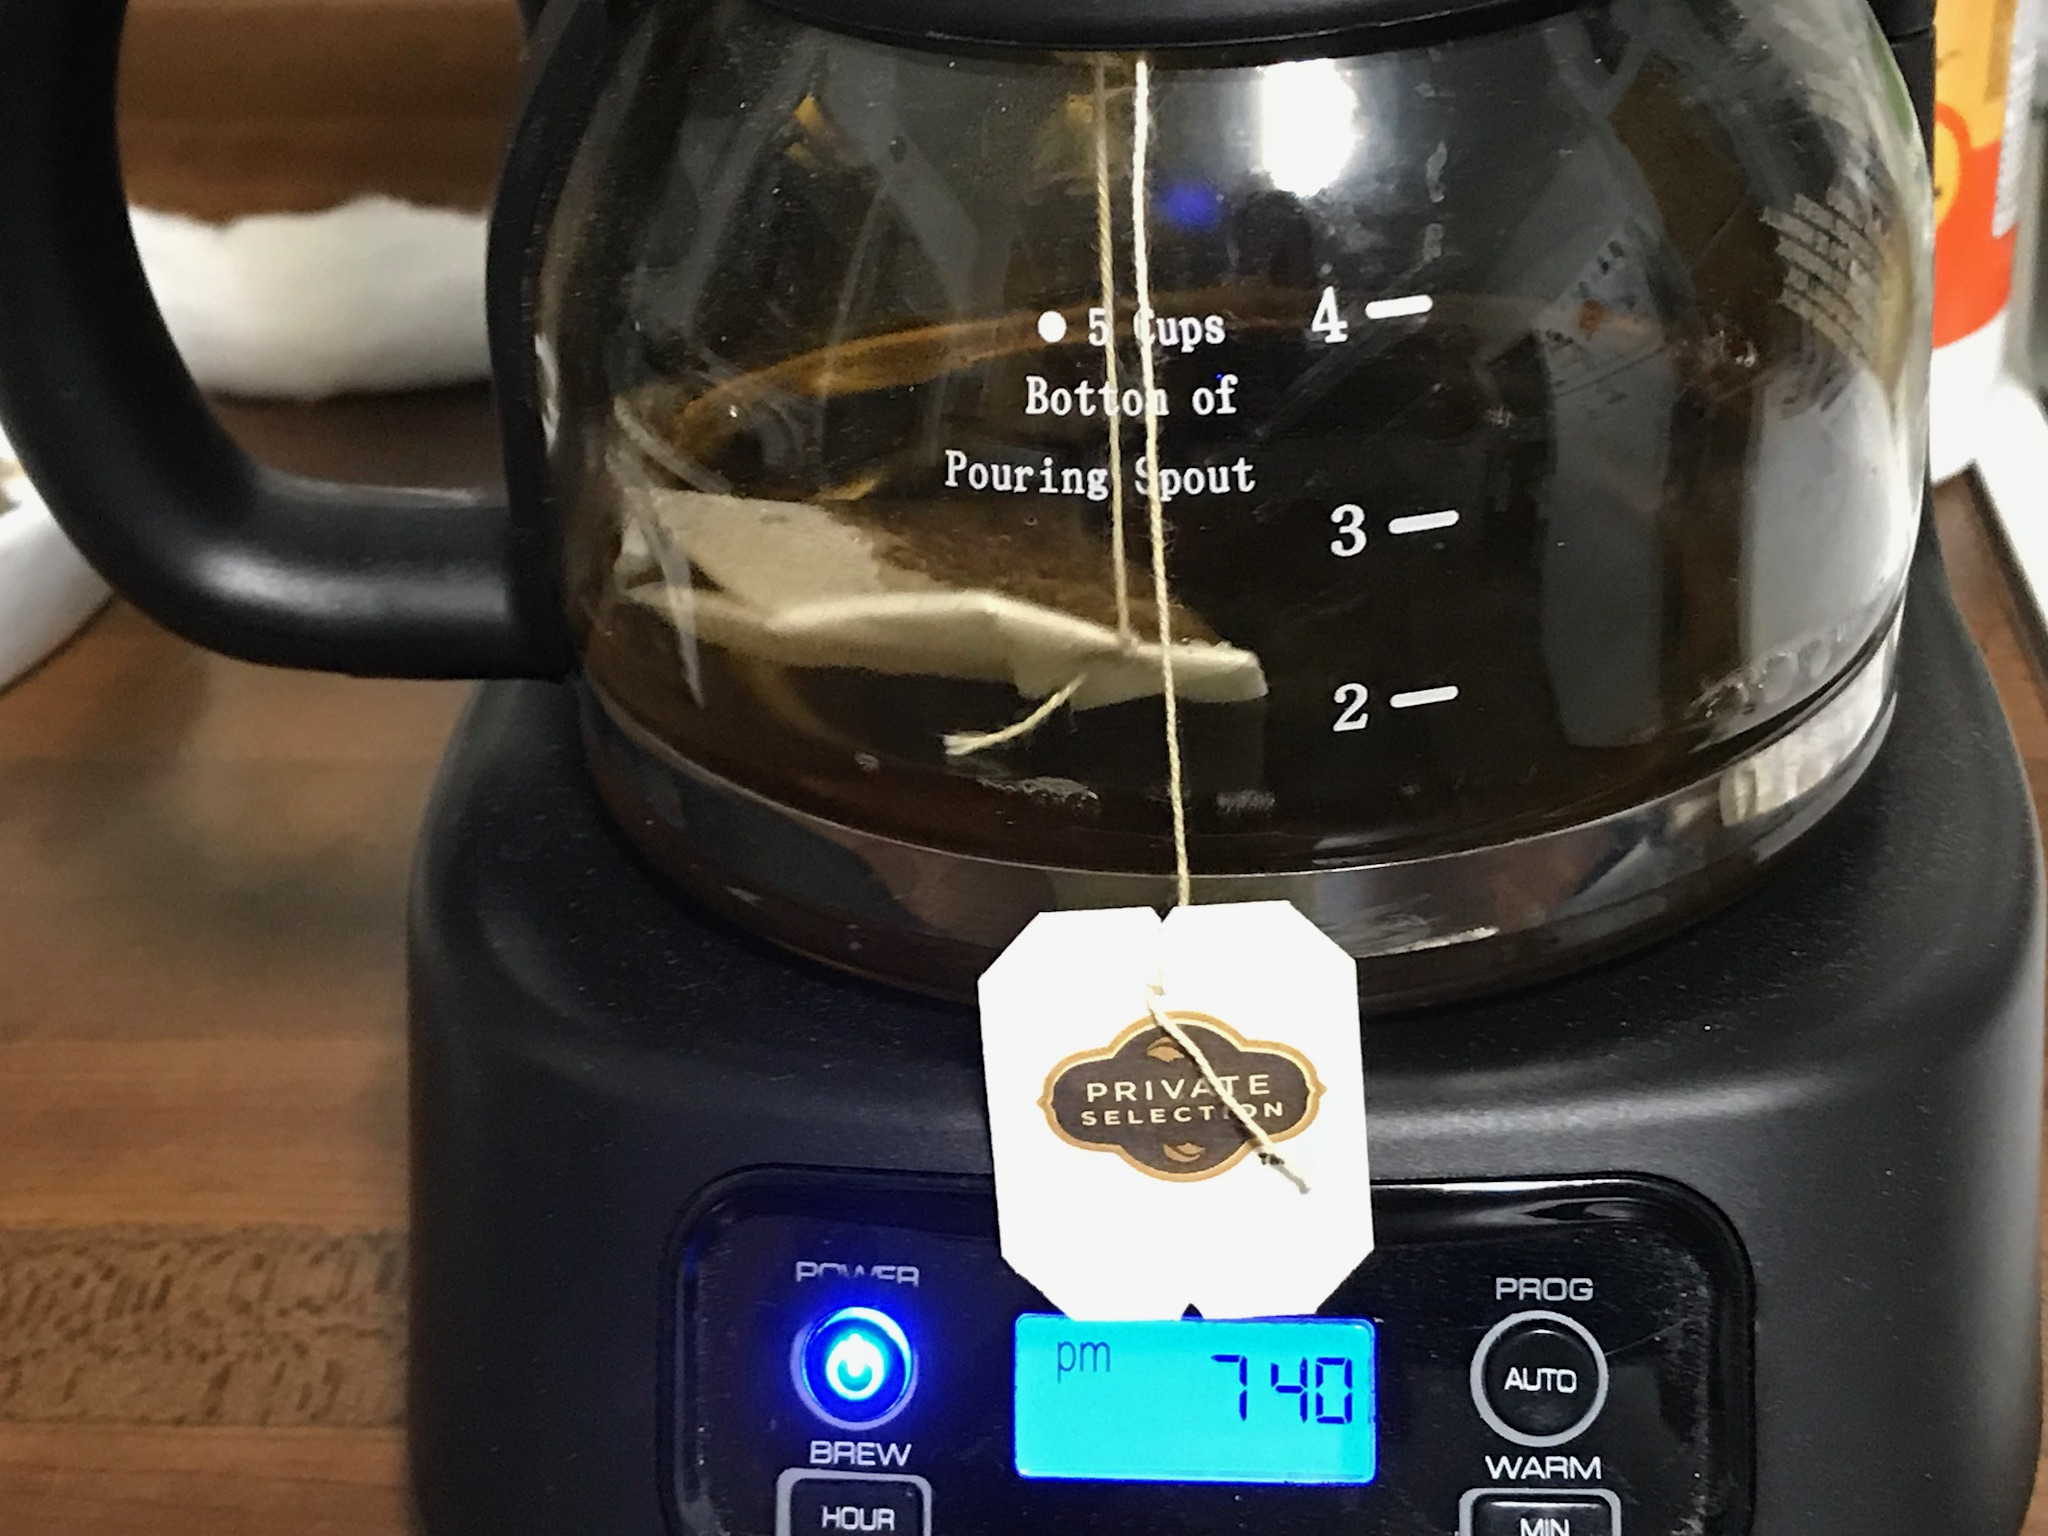 What???  Tea in a coffee maker????  Photo taken by and the property of FourWalls.